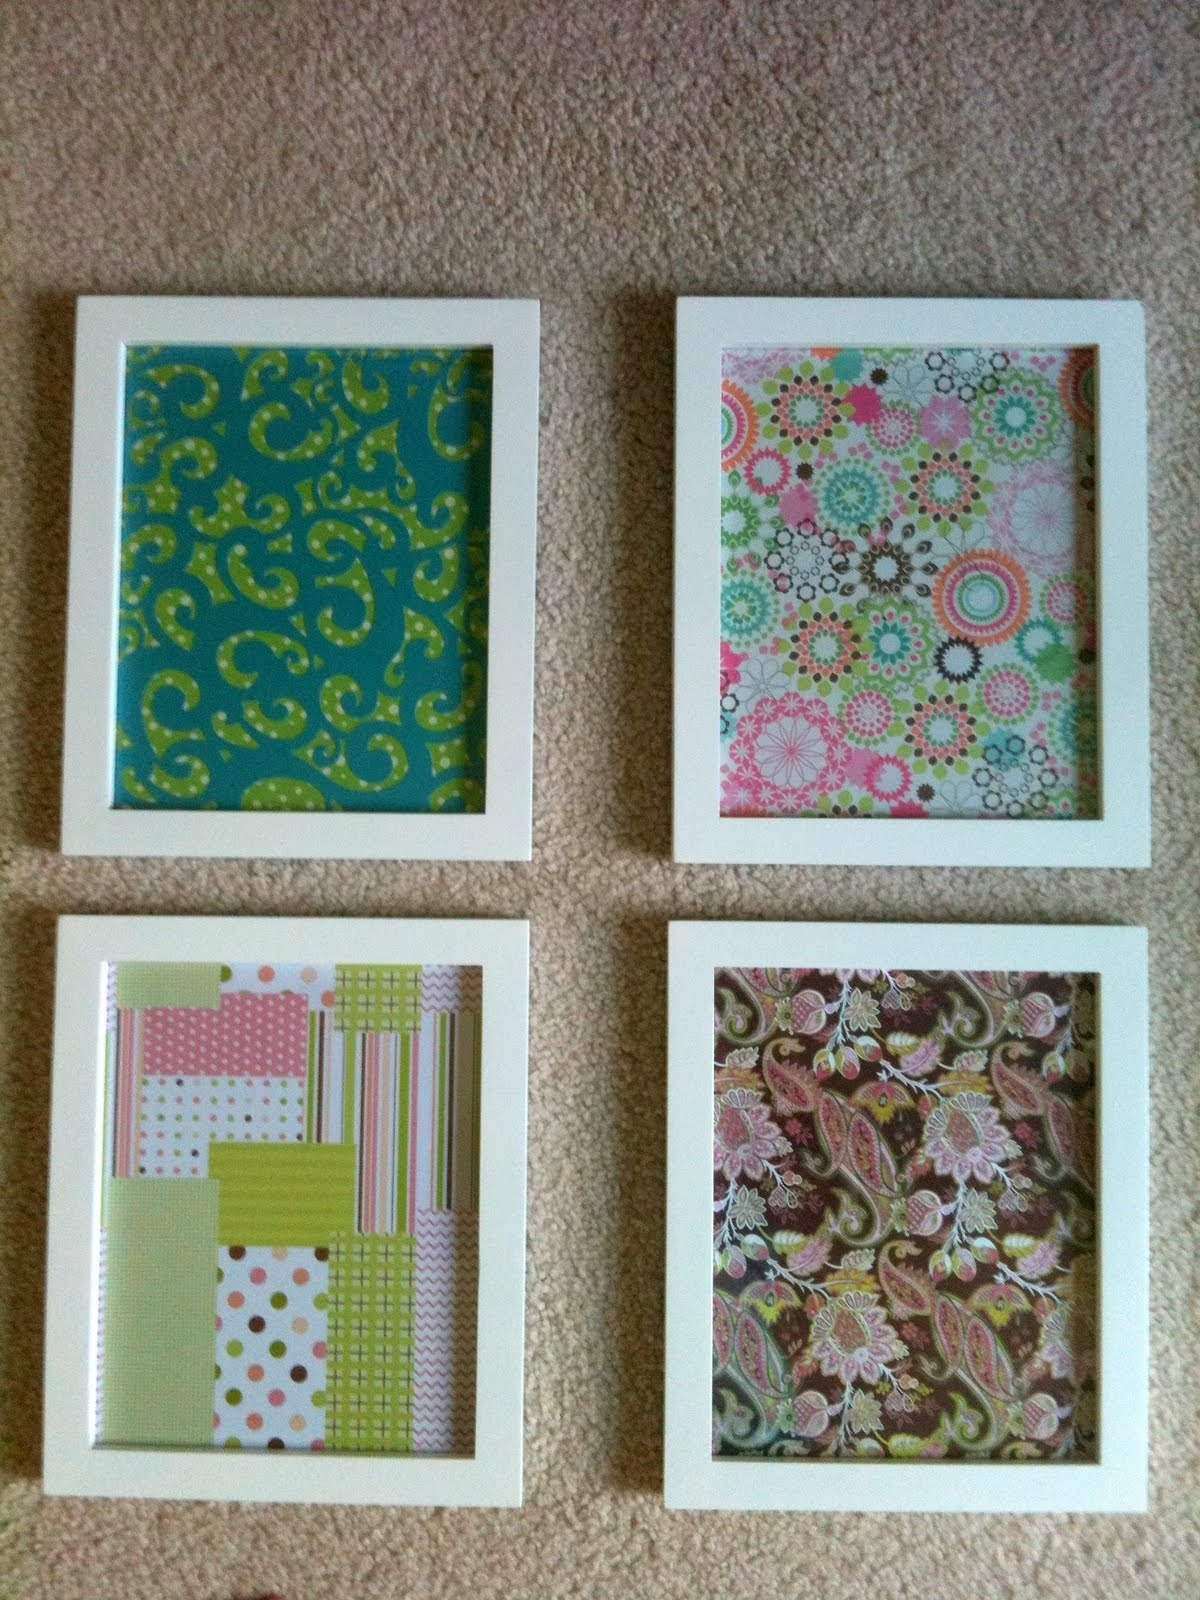 15 photos fabric wall art frames for Fabric wall art